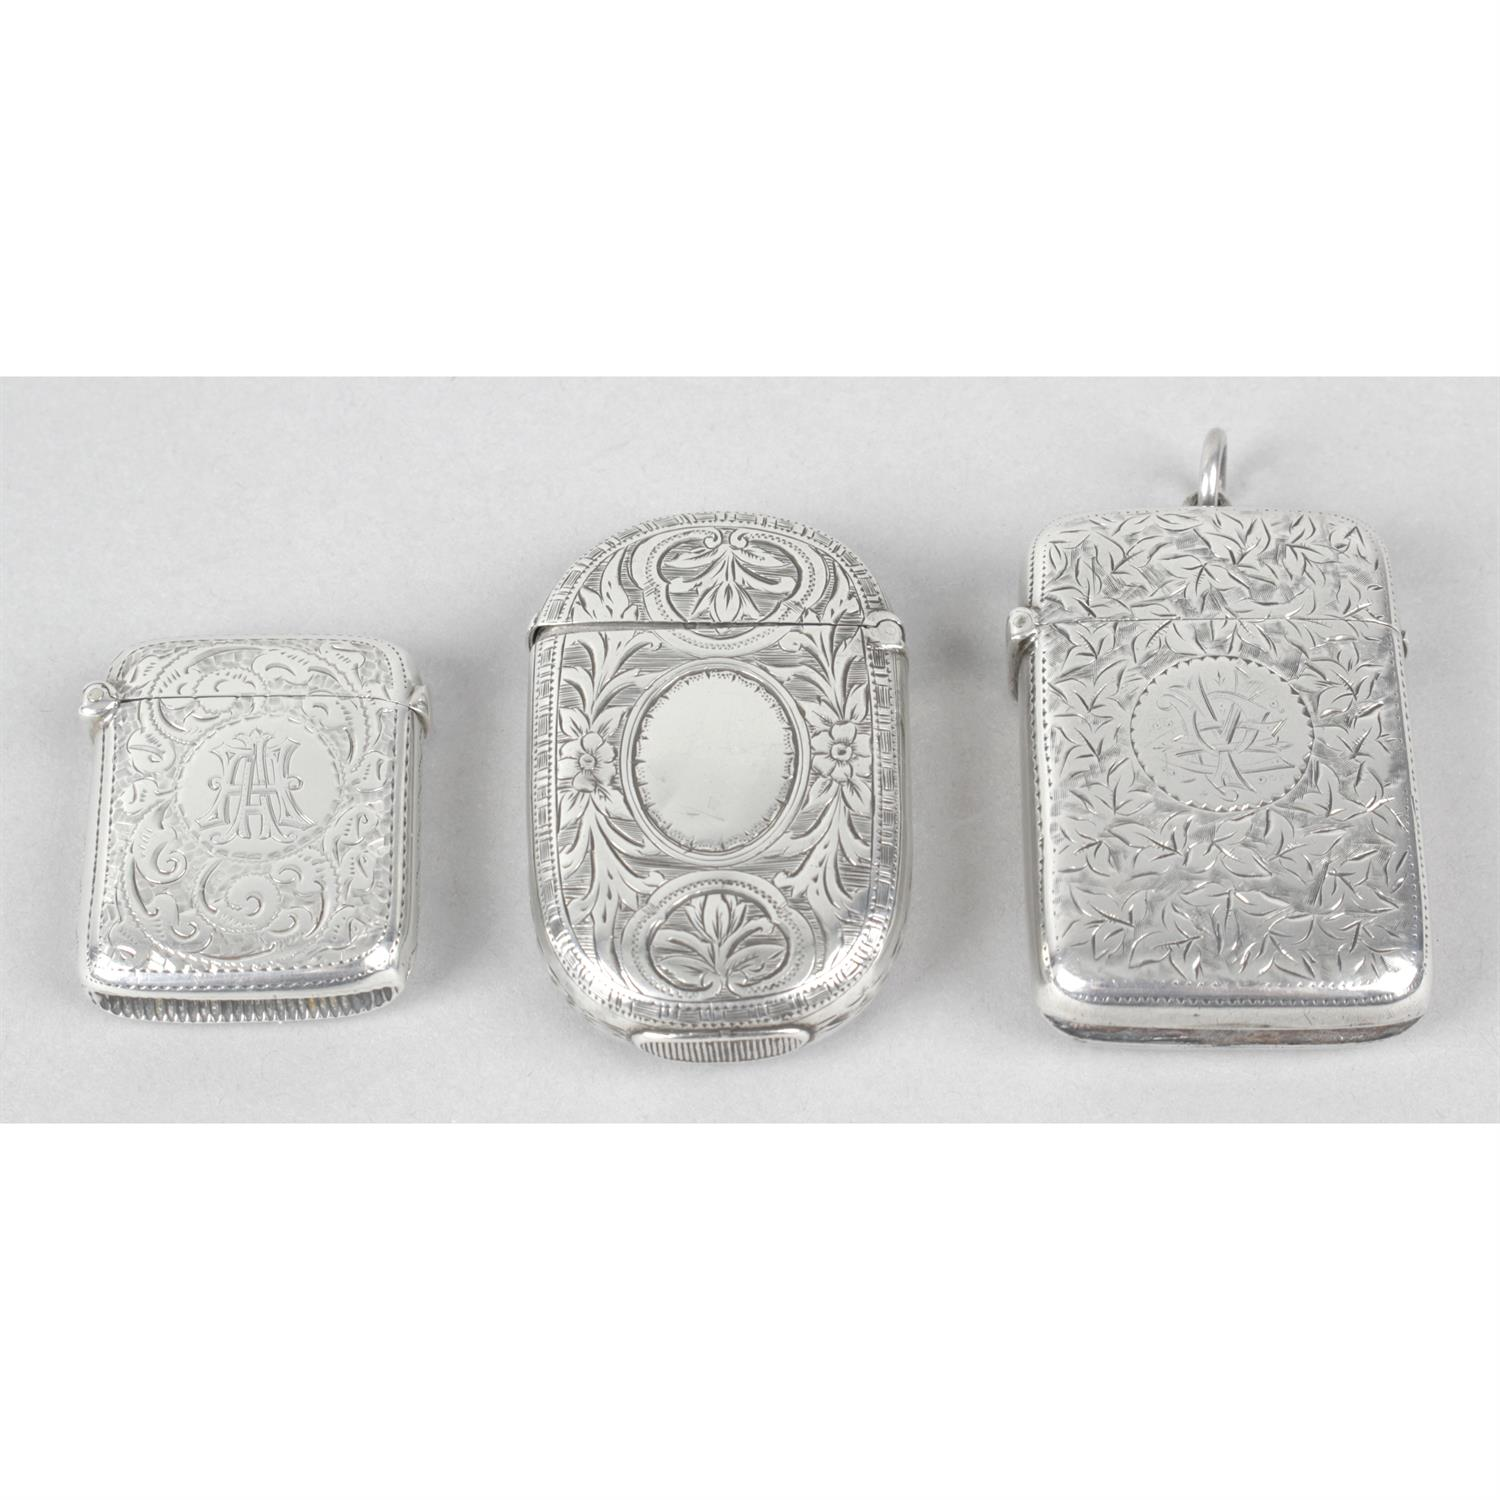 Three late Victorian silver vesta cases, with floral and foliate engraving. (3).